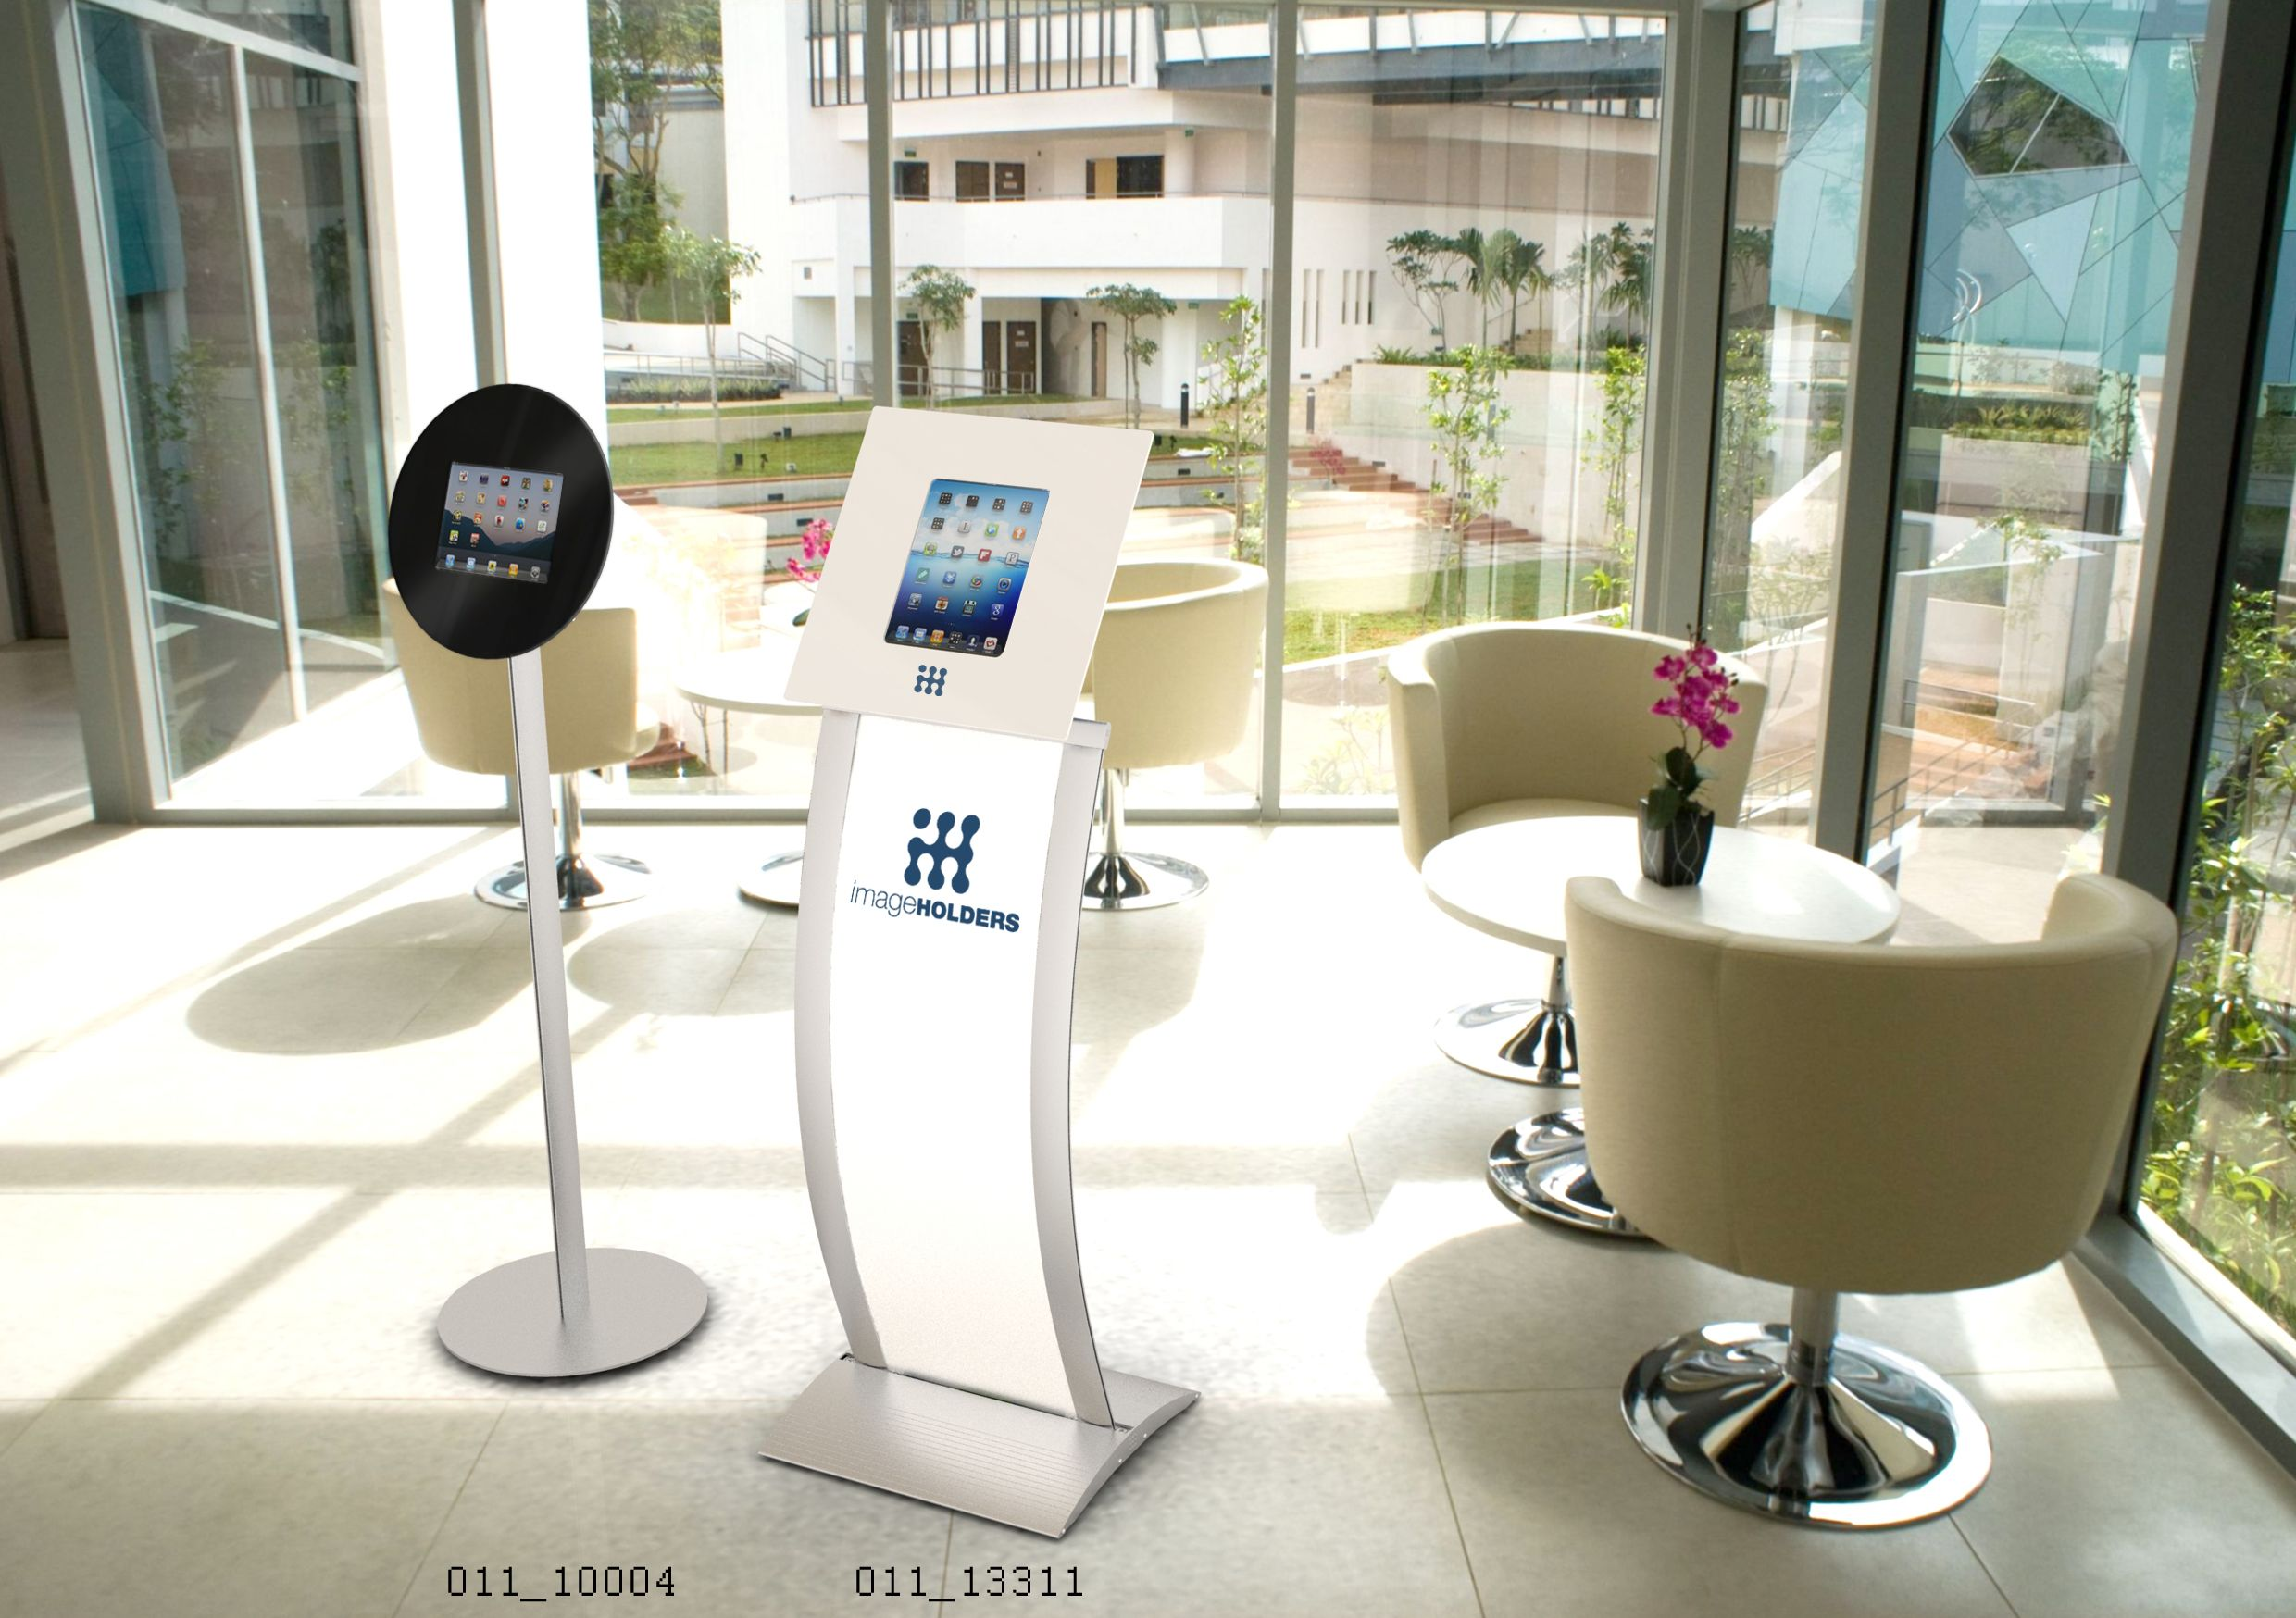 http://www.imageholders.com/uk/ipad-tablet-kiosks-enclosures.html  imageHOLDERS Floor Standing Interactive Display Stands and Tablet Enclosure